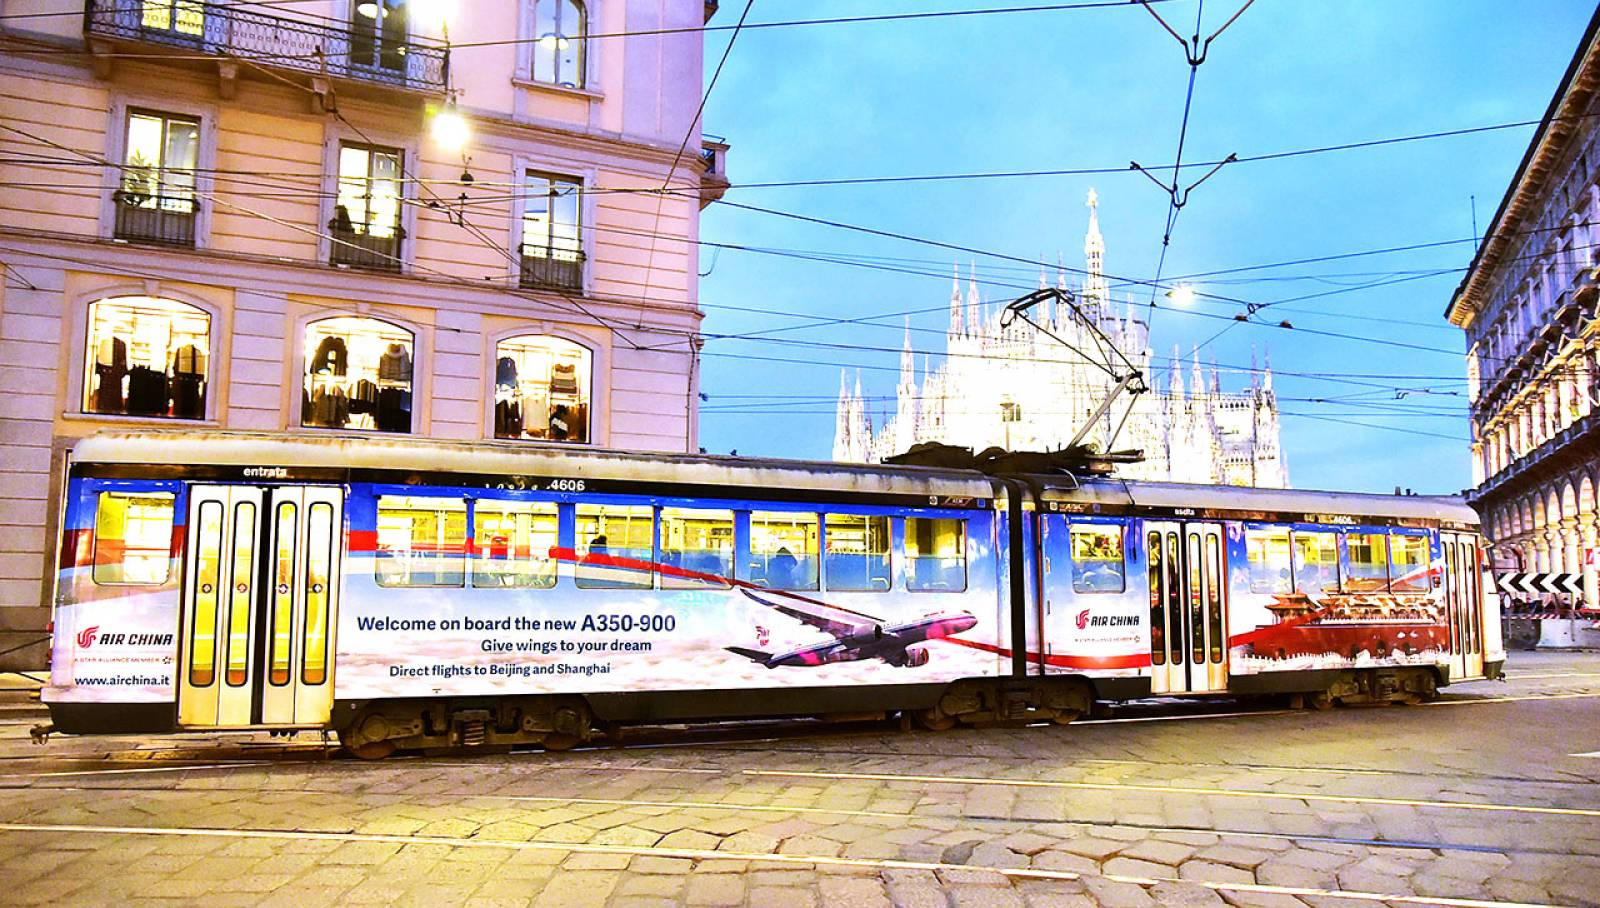 Advertising on tram IGPDecaux Milan Wrapped vehicles for Air China